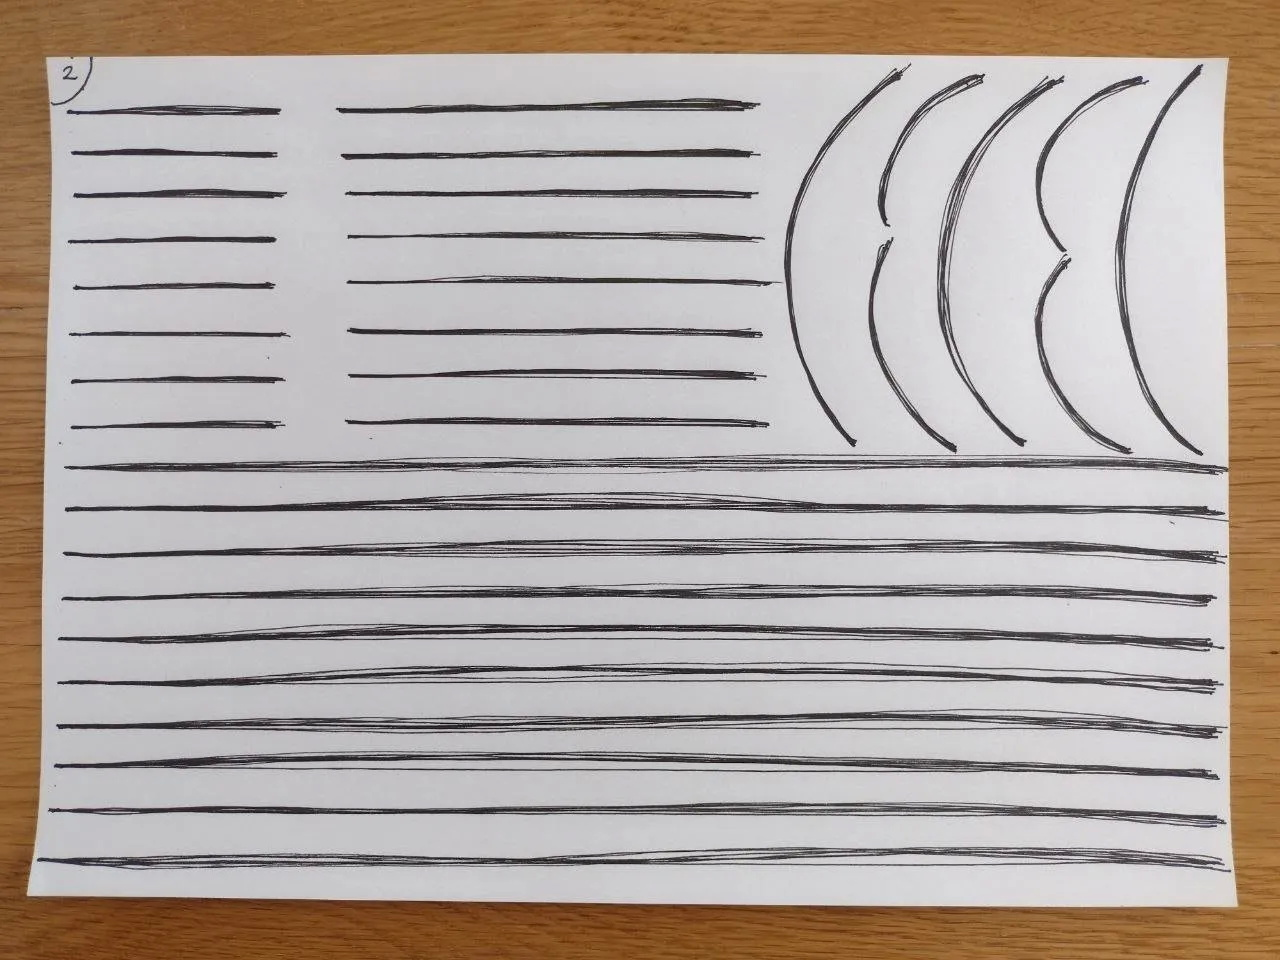 The second page filled with lines and curves. I was able to start each superimposed line with more precision: I felt less anxious, and took more time to focus on my task